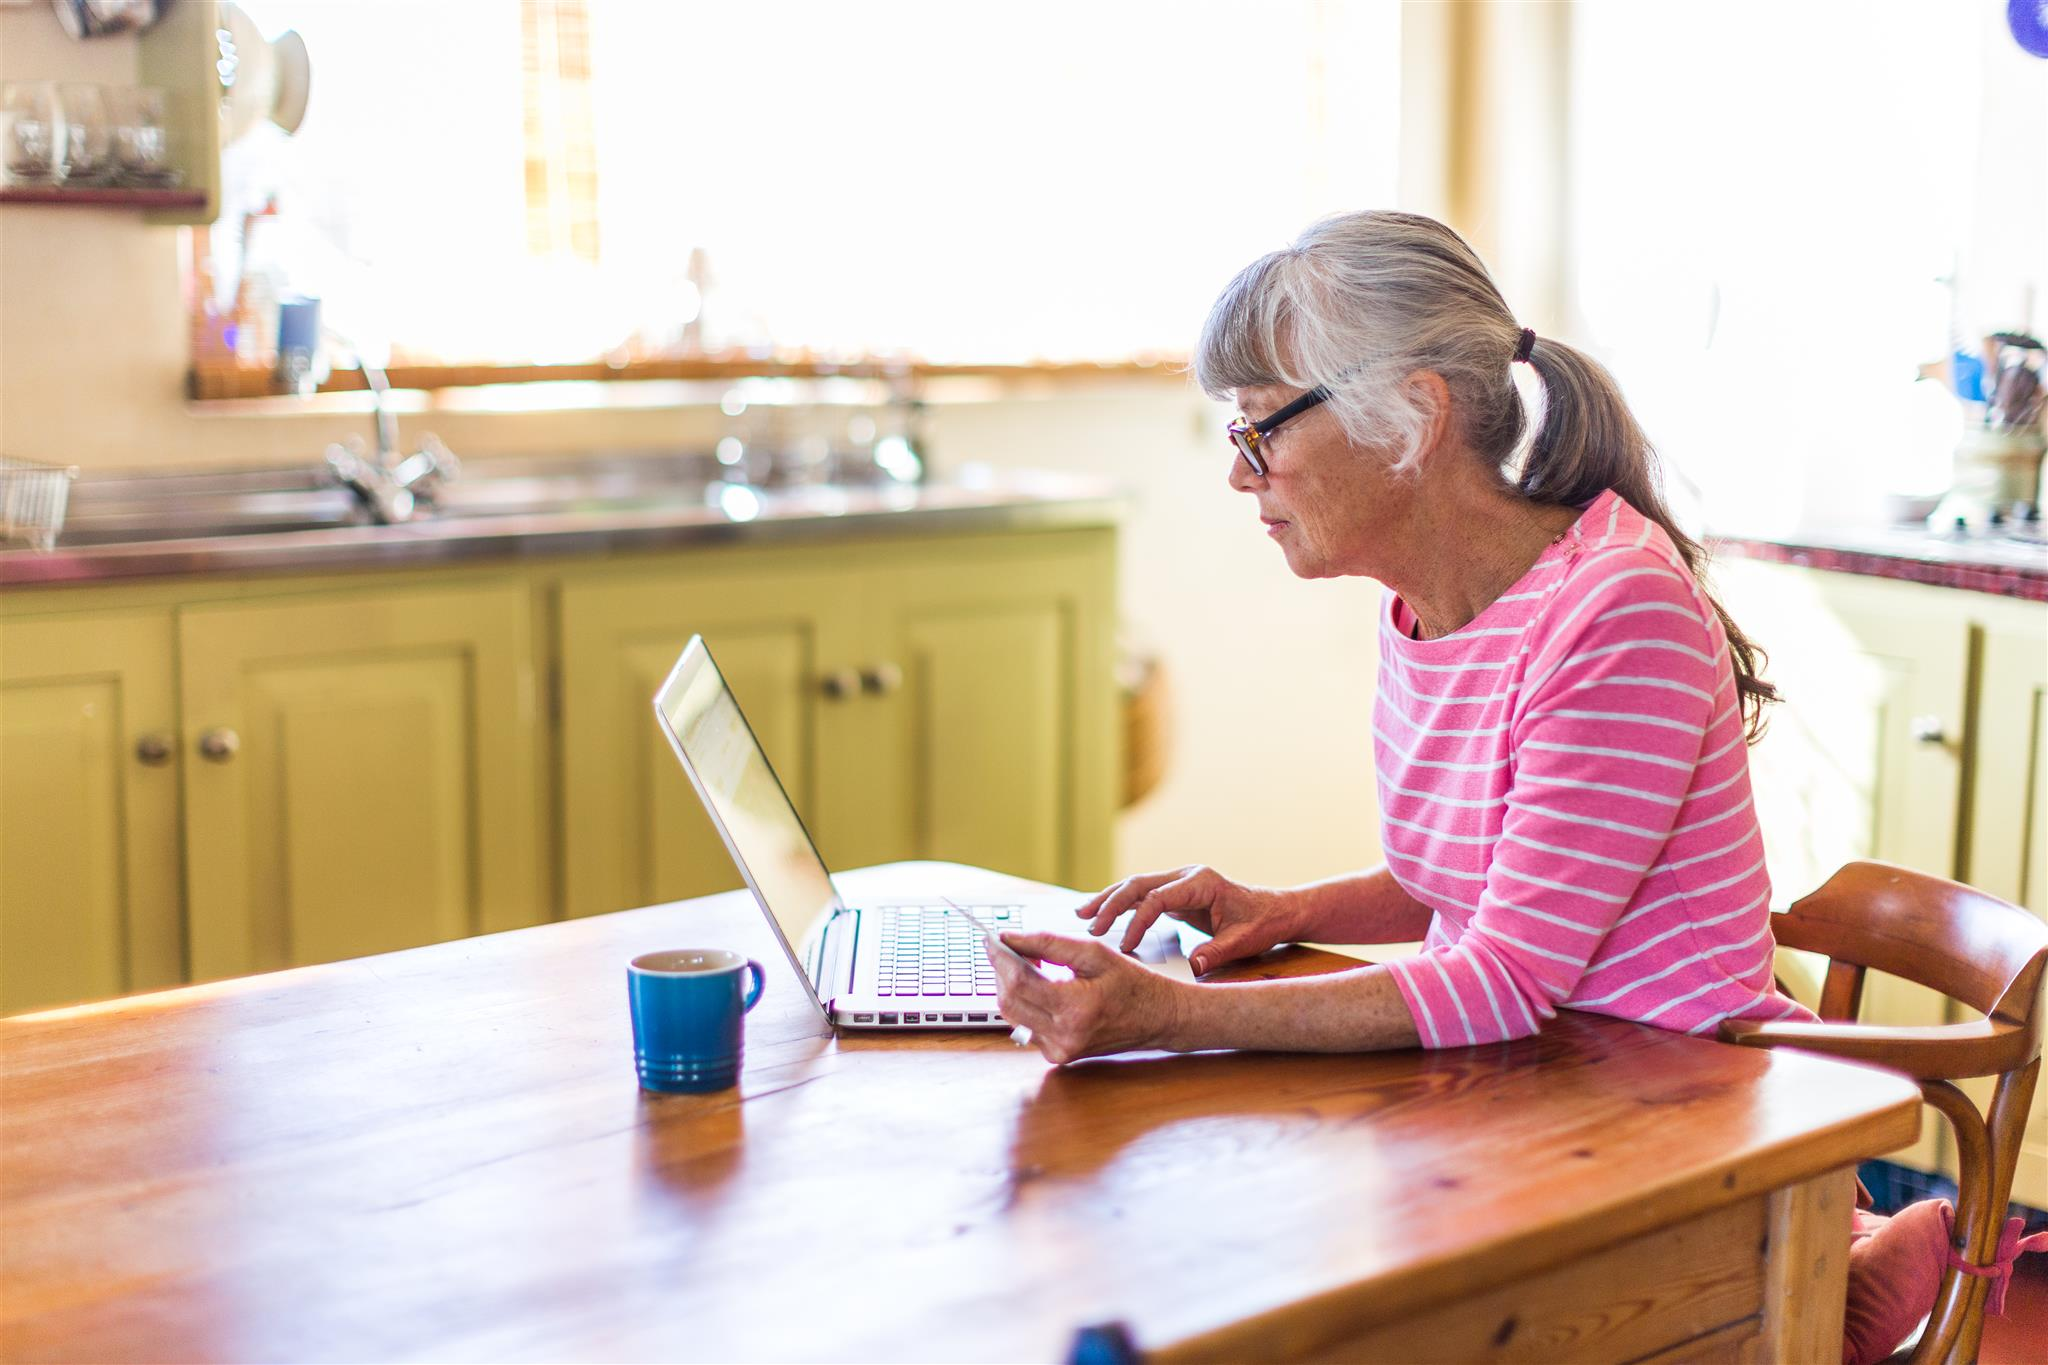 senior female browses online in her kitchen